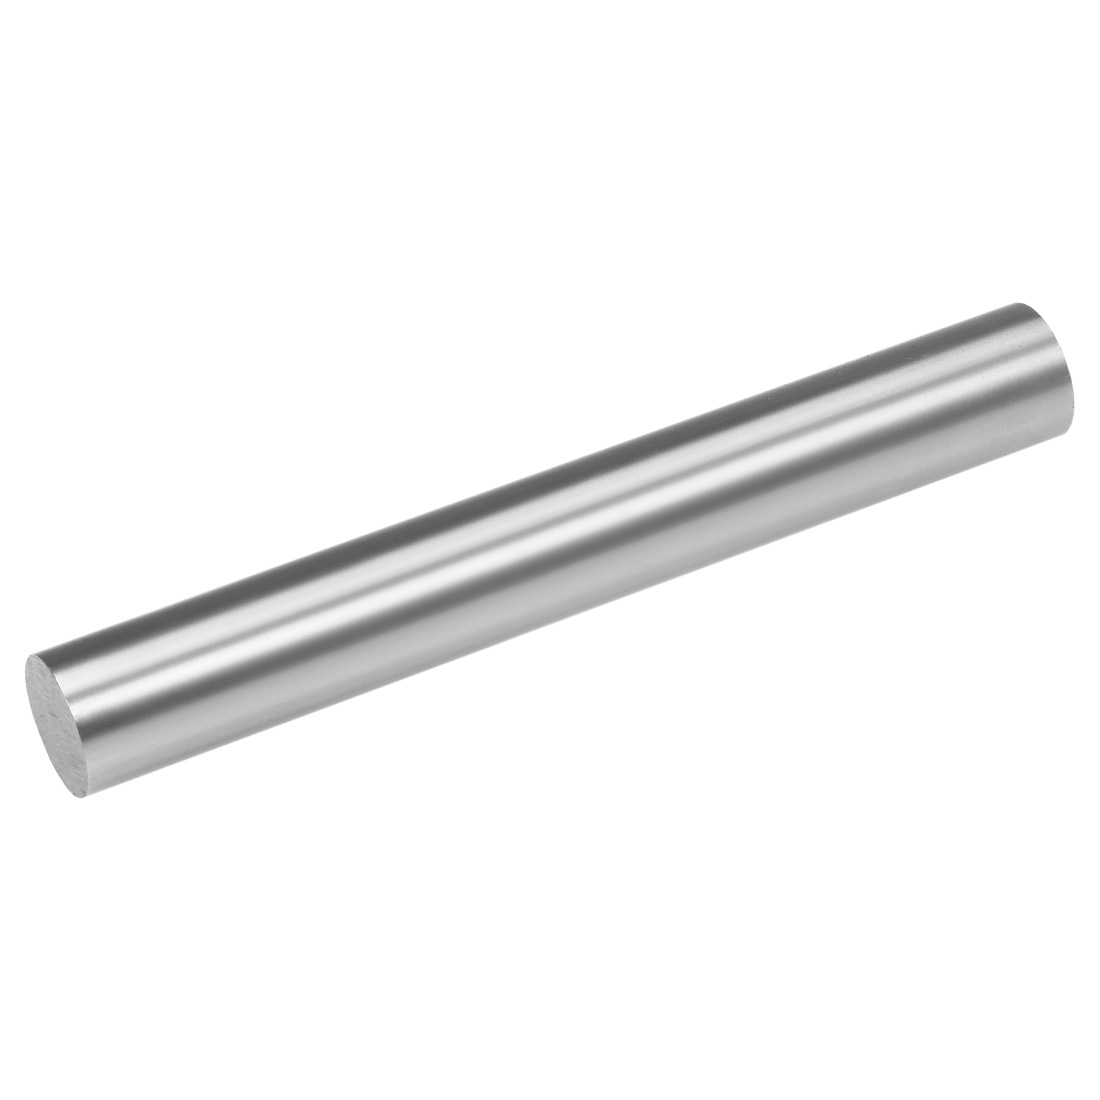 Uxcell HSS Lathe Round Rod Solid Shaft Bar 20mm Dia 150mm Length